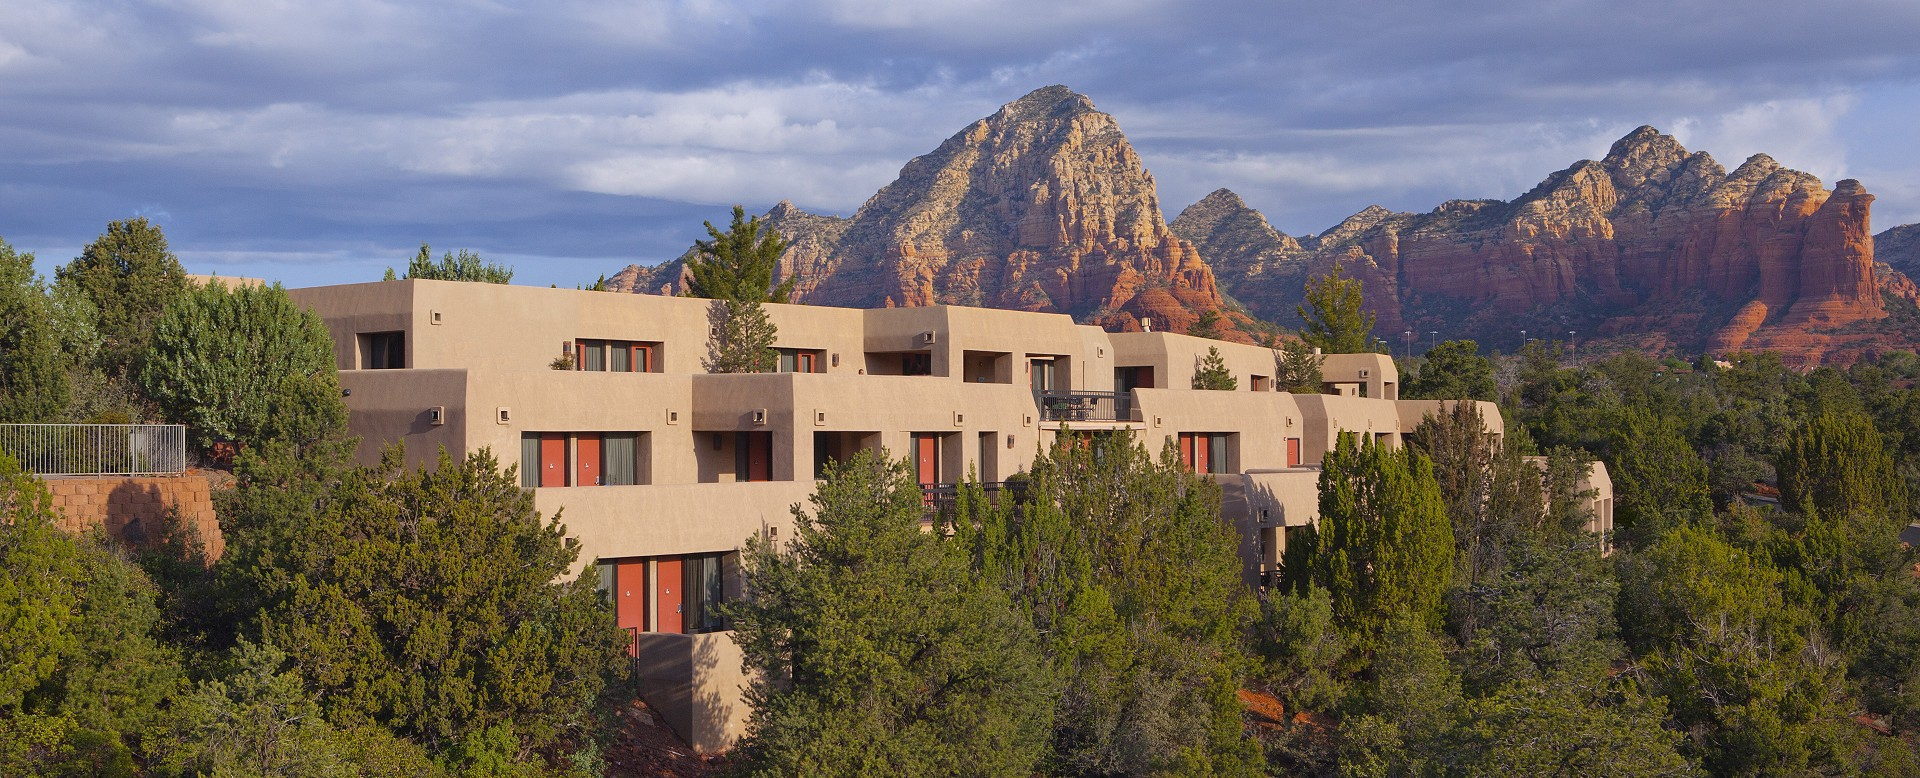 Best Western Plus Inn of Sedona-Exterior